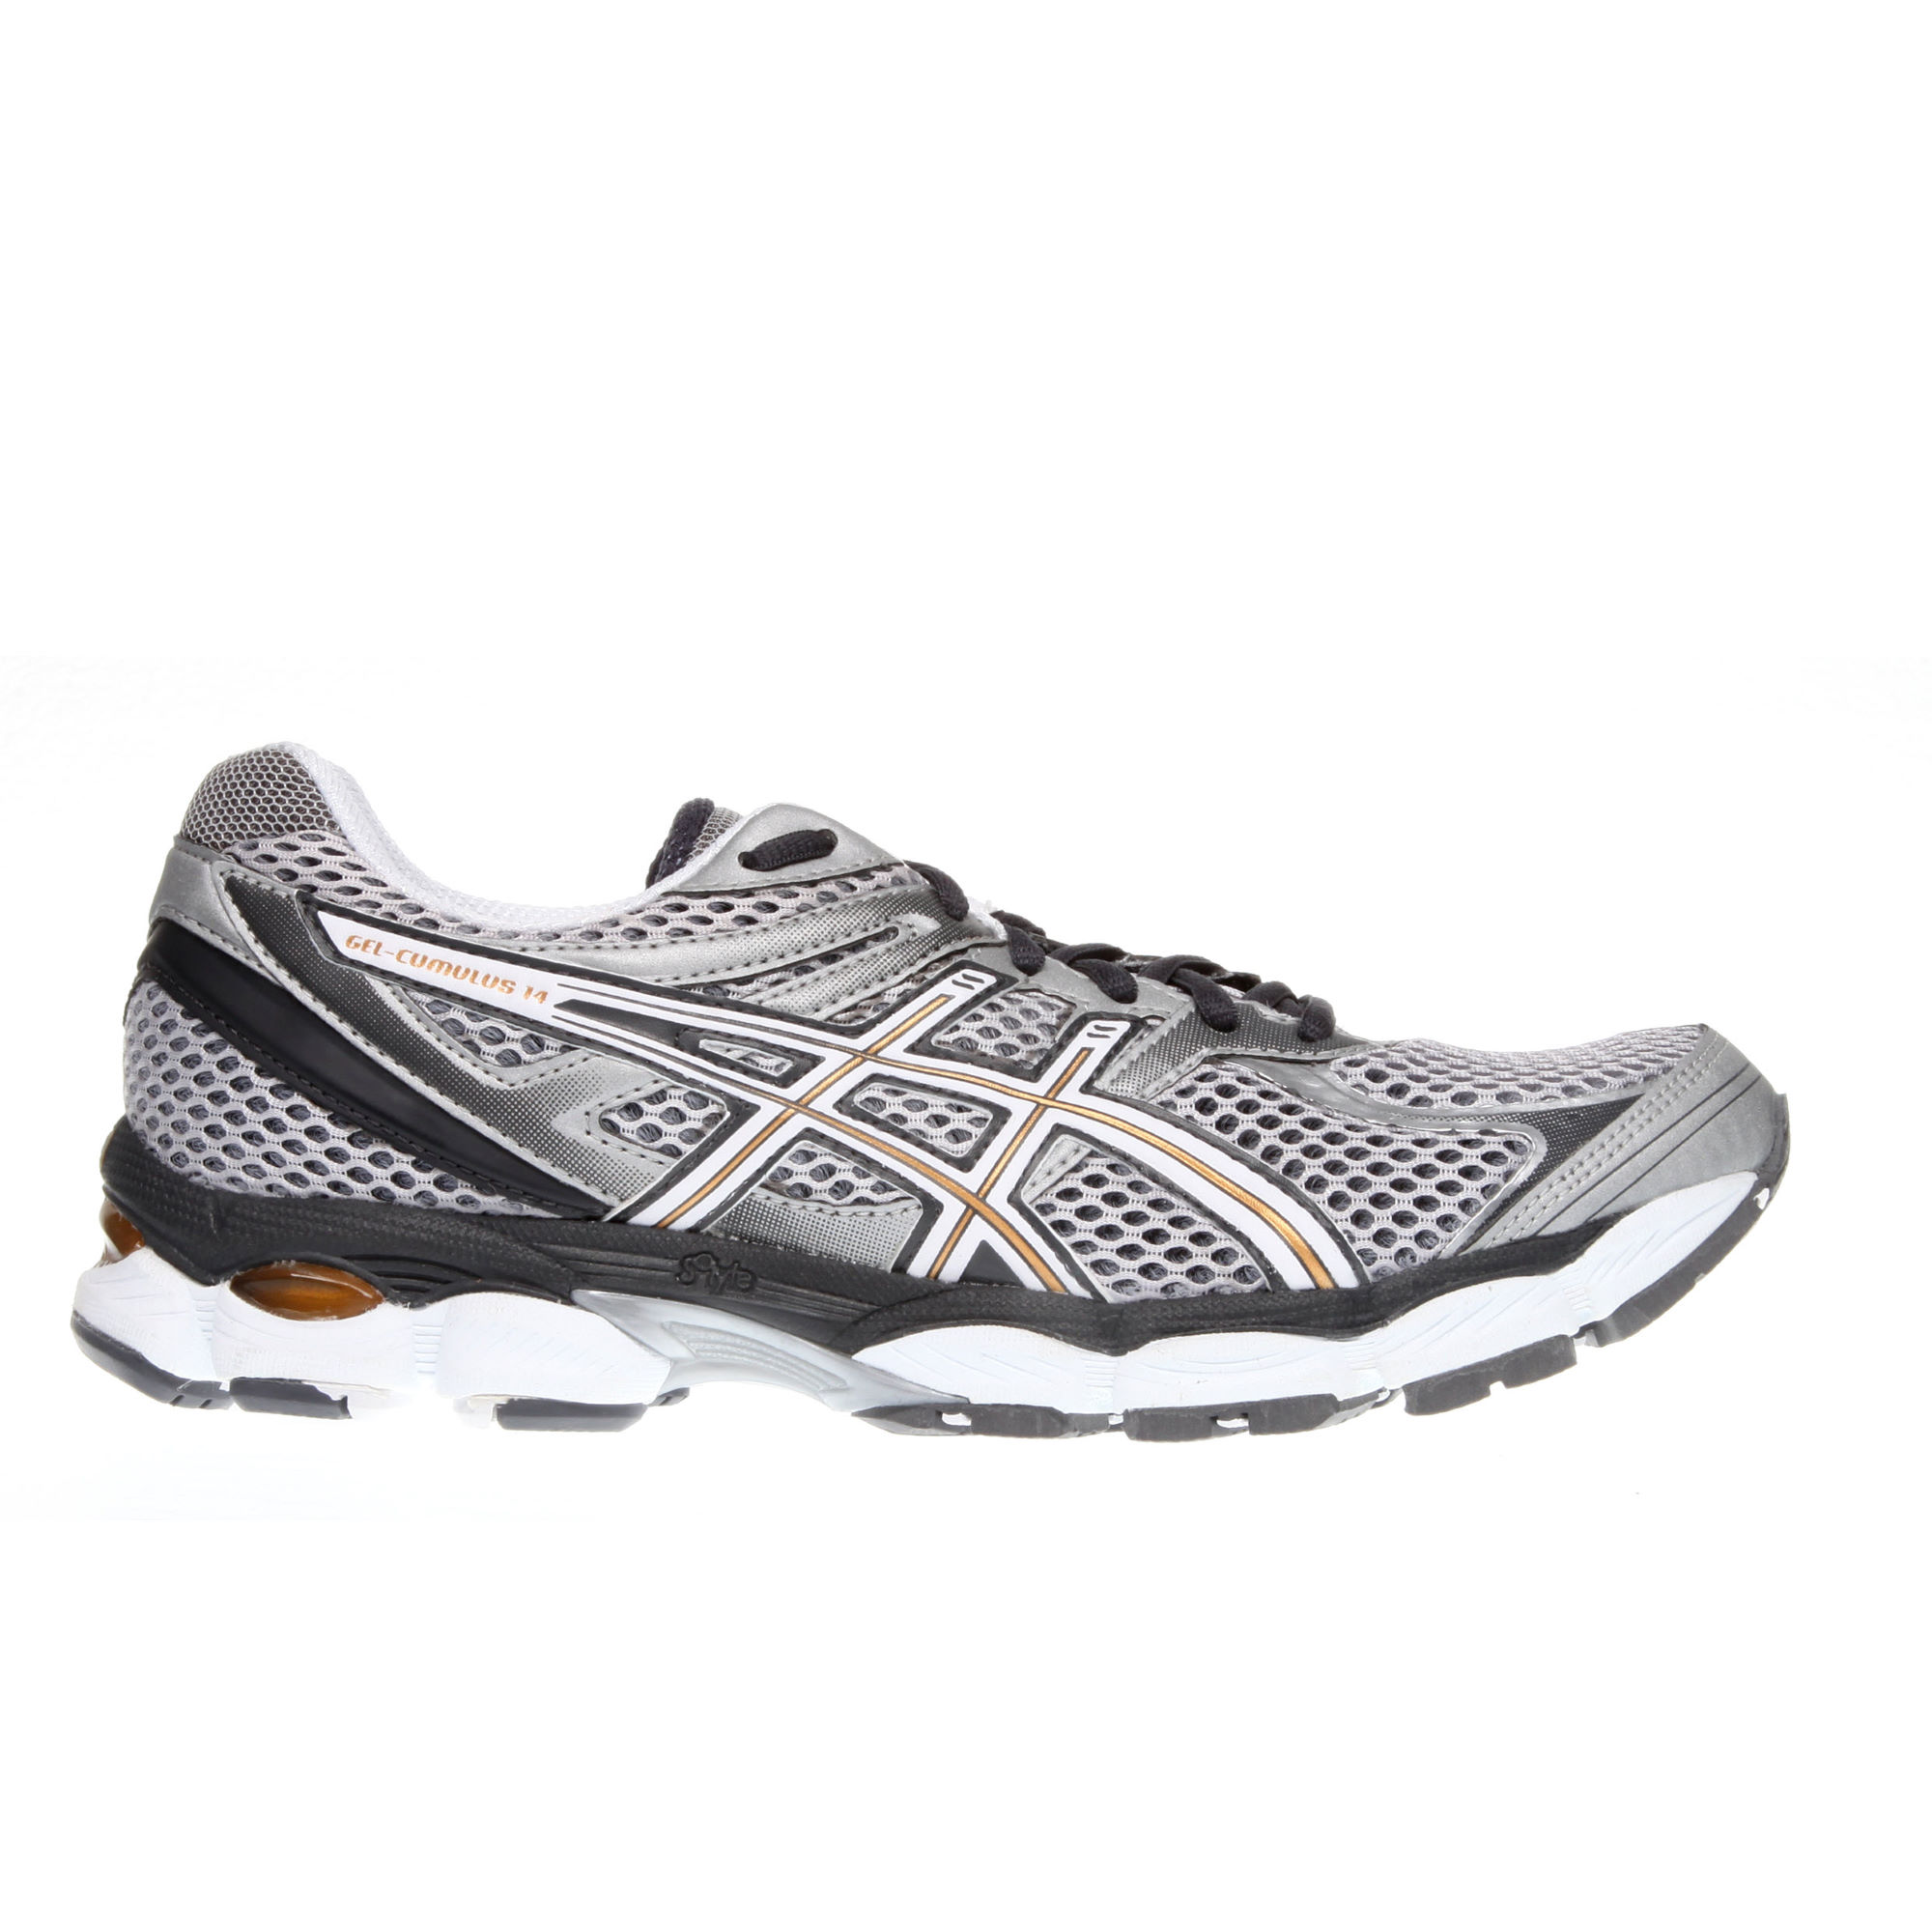 chaussures de running amorties asics ladies gel cumulus 14 shoes ss12 wiggle france. Black Bedroom Furniture Sets. Home Design Ideas